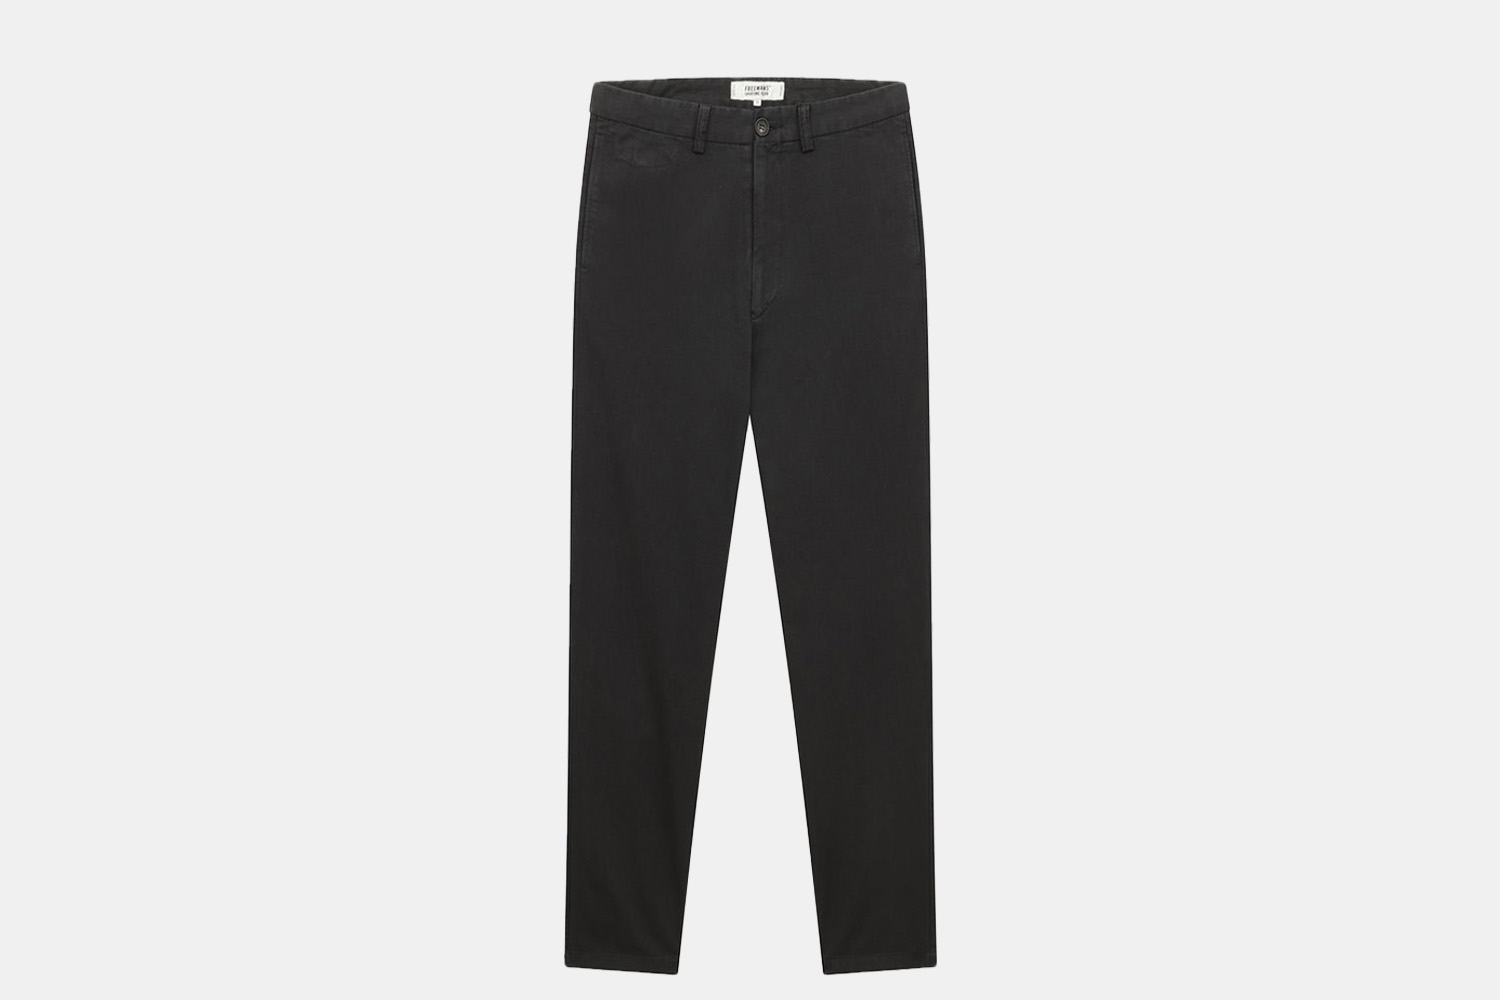 a pair of black chino trousers.